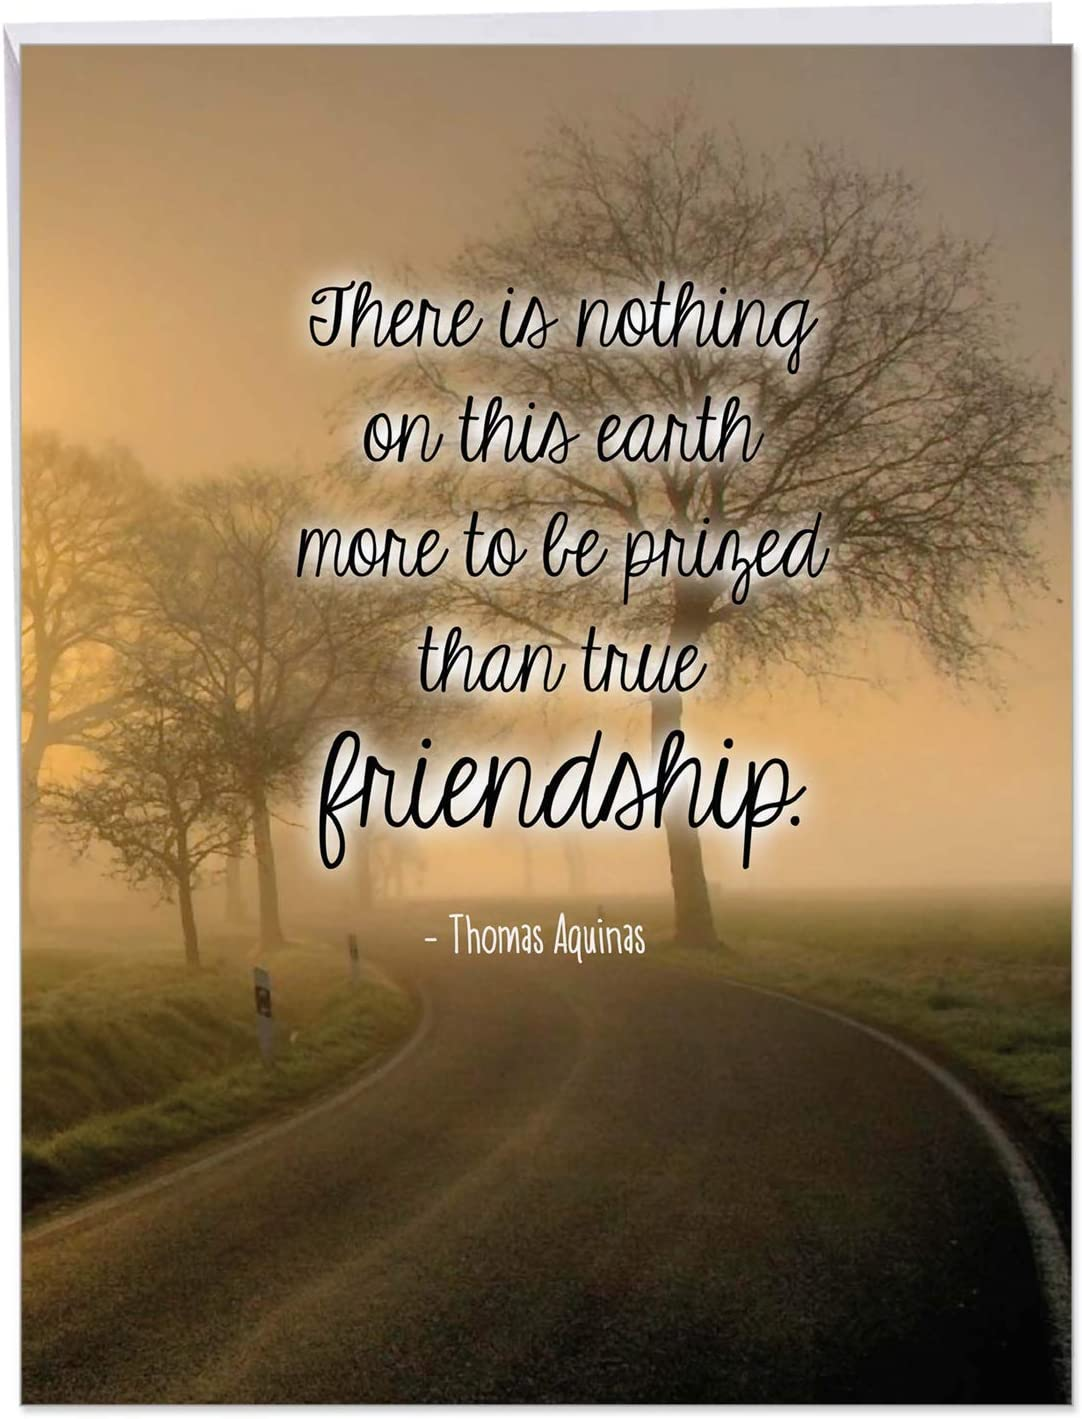 Friendly Words Friendship Birthday' Greeting Card with Envelope 8.5 x 11 Inch - True Friends Quote by Saint Thomas Aquinas - Nature Design Stationery Set for Personalized Happy Bday Gift J6618GBDG